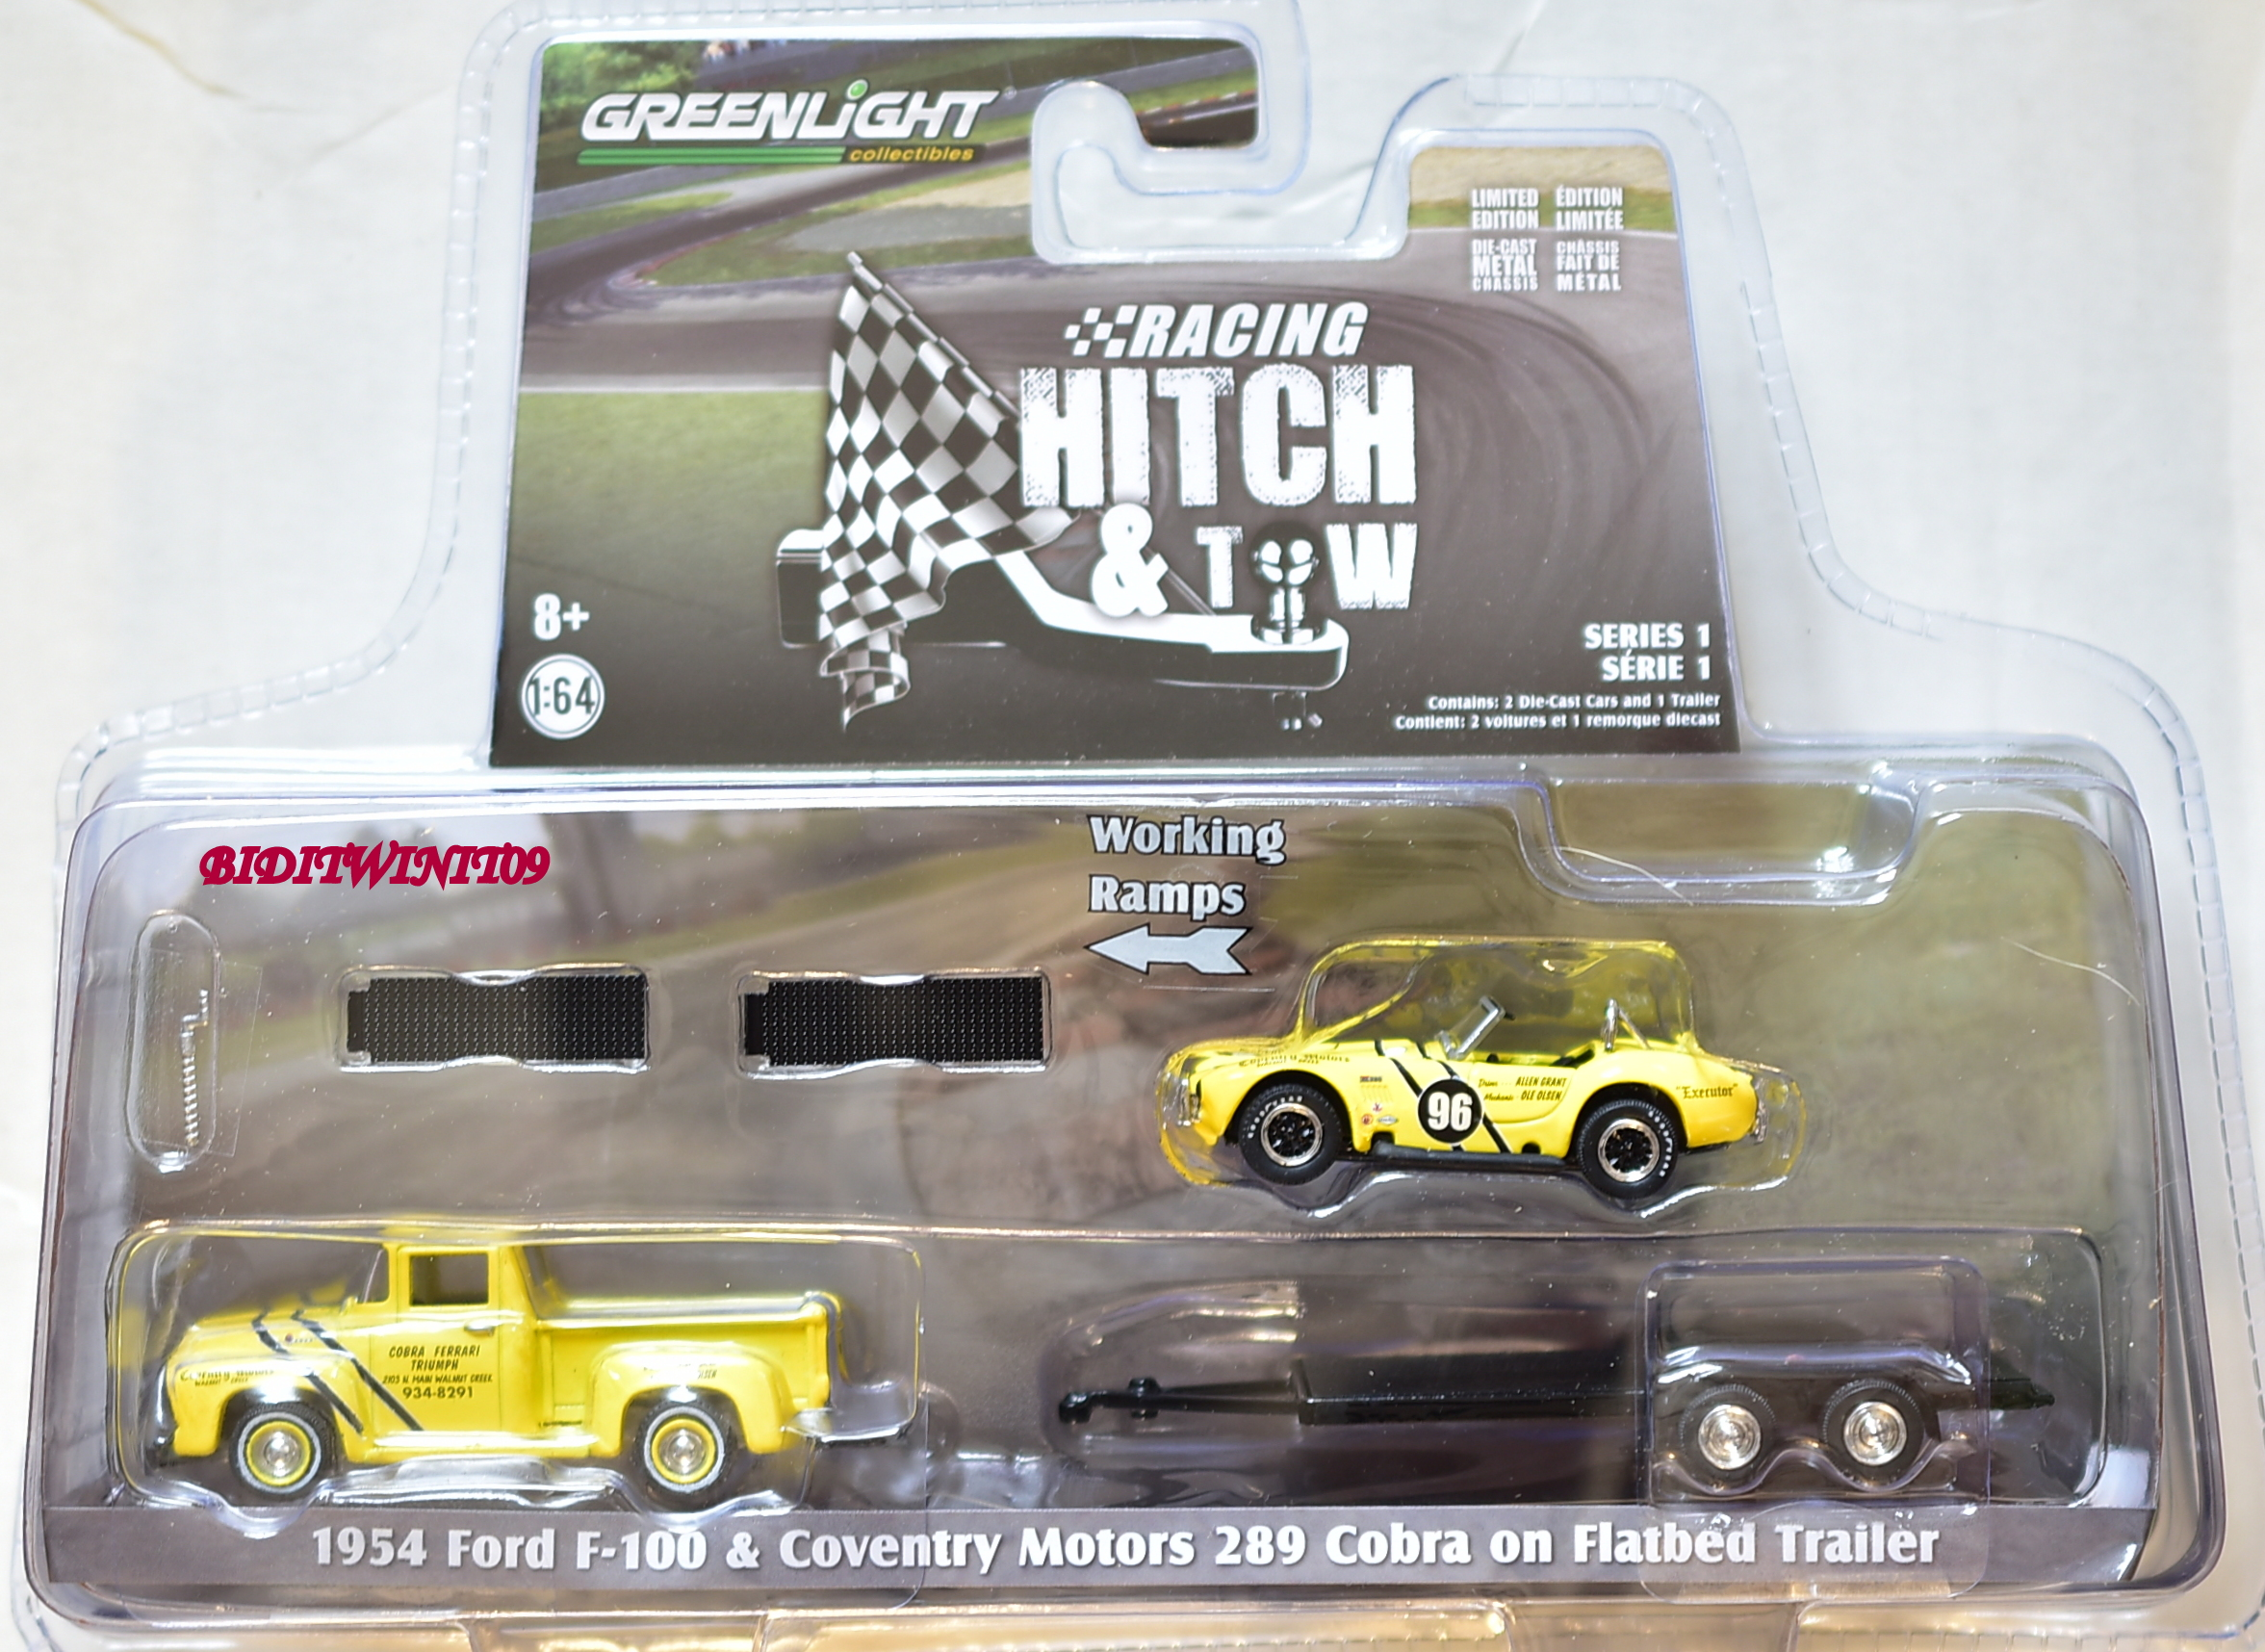 GREENLIGHT 1954 FORD F-100 & COVENTRY MOTORS 289 COBRA ON FLATBED TRAILER